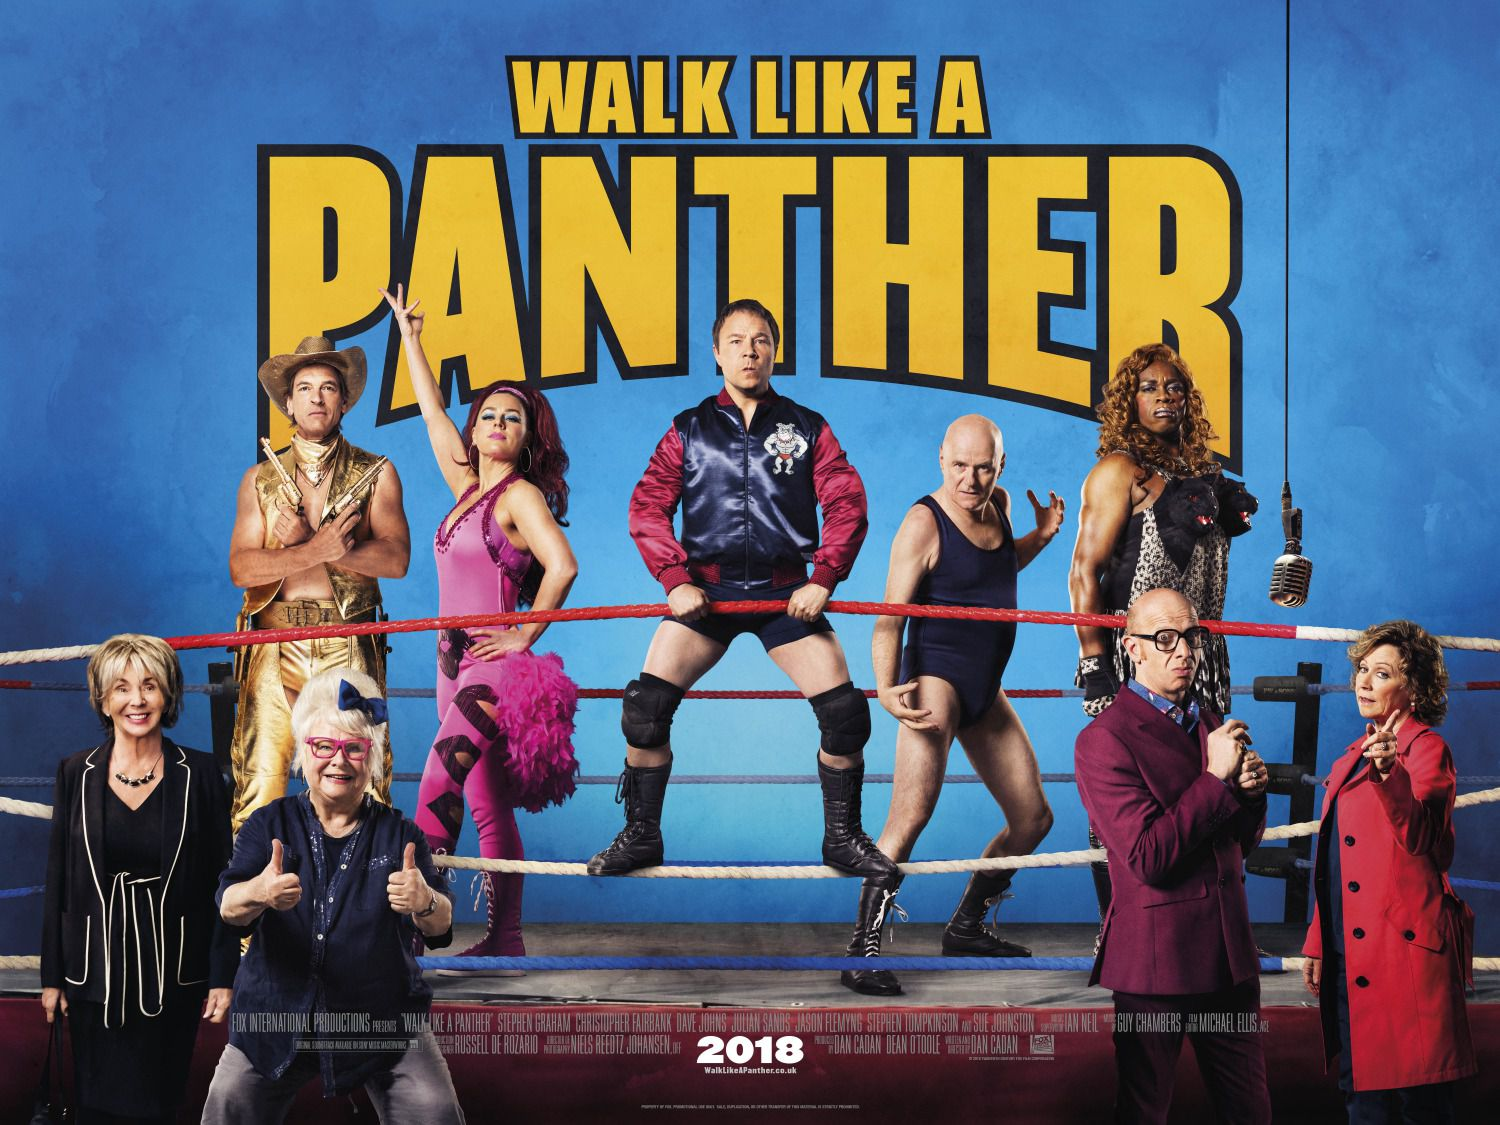 Walk like a Panther - comedy film poster